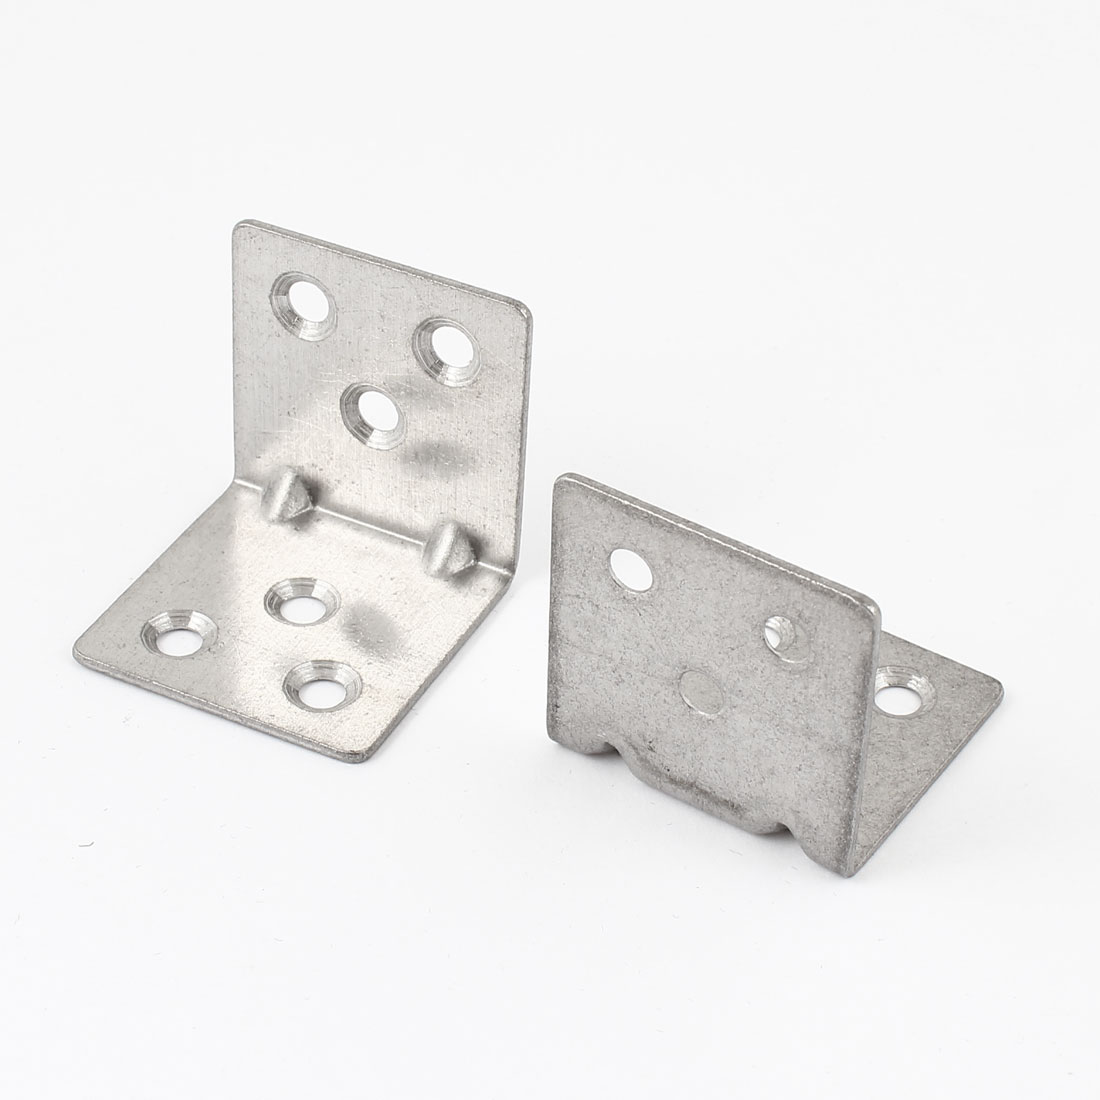 2 Pcs 5mm Mounting Thread Dia 6 Hole Metal Right Angle Bracket Support 3.5cm x 3.5cm